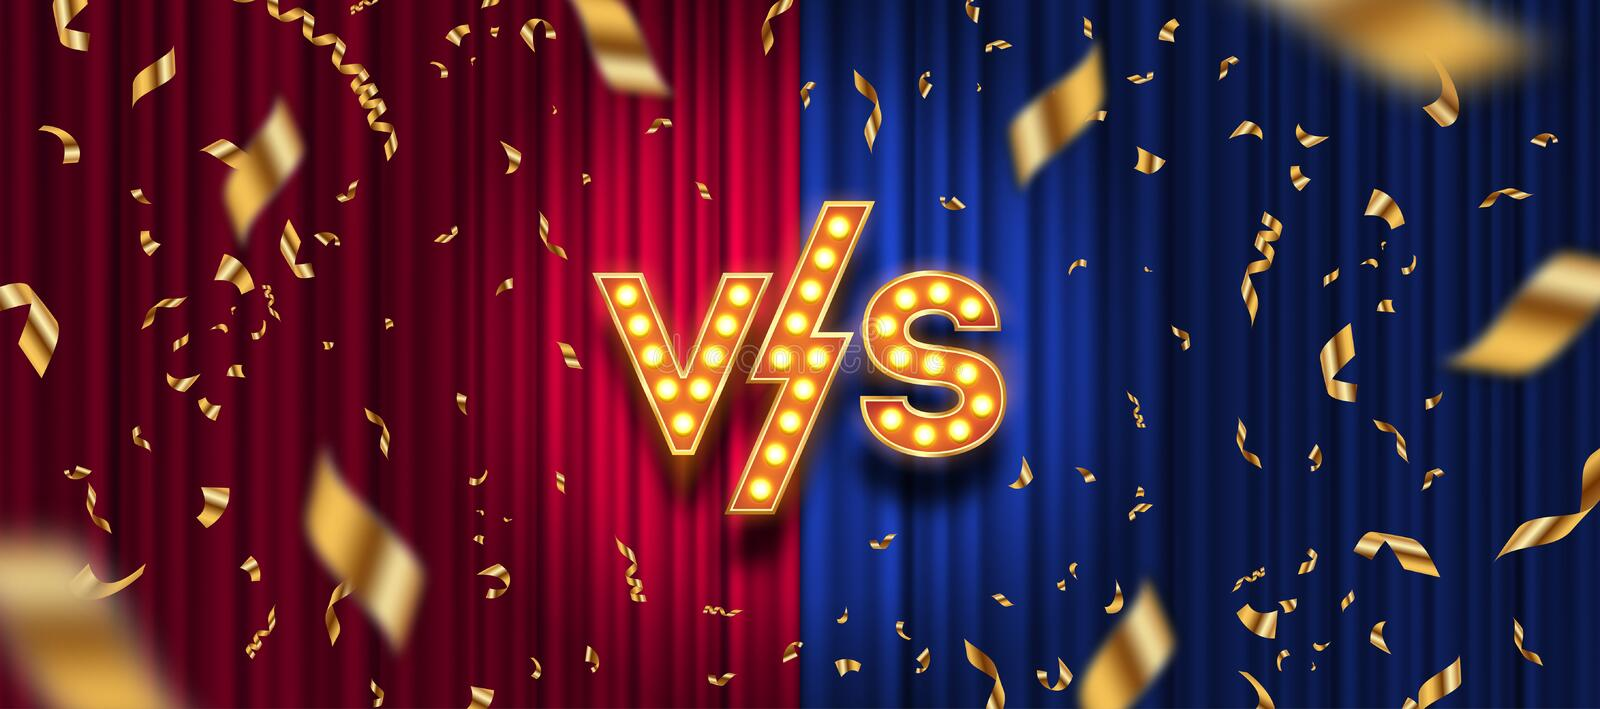 Lightbulbs letters versus logo, golden confetti on red and blue curtain background. VS logo for games, battle, performance, show, stock illustration